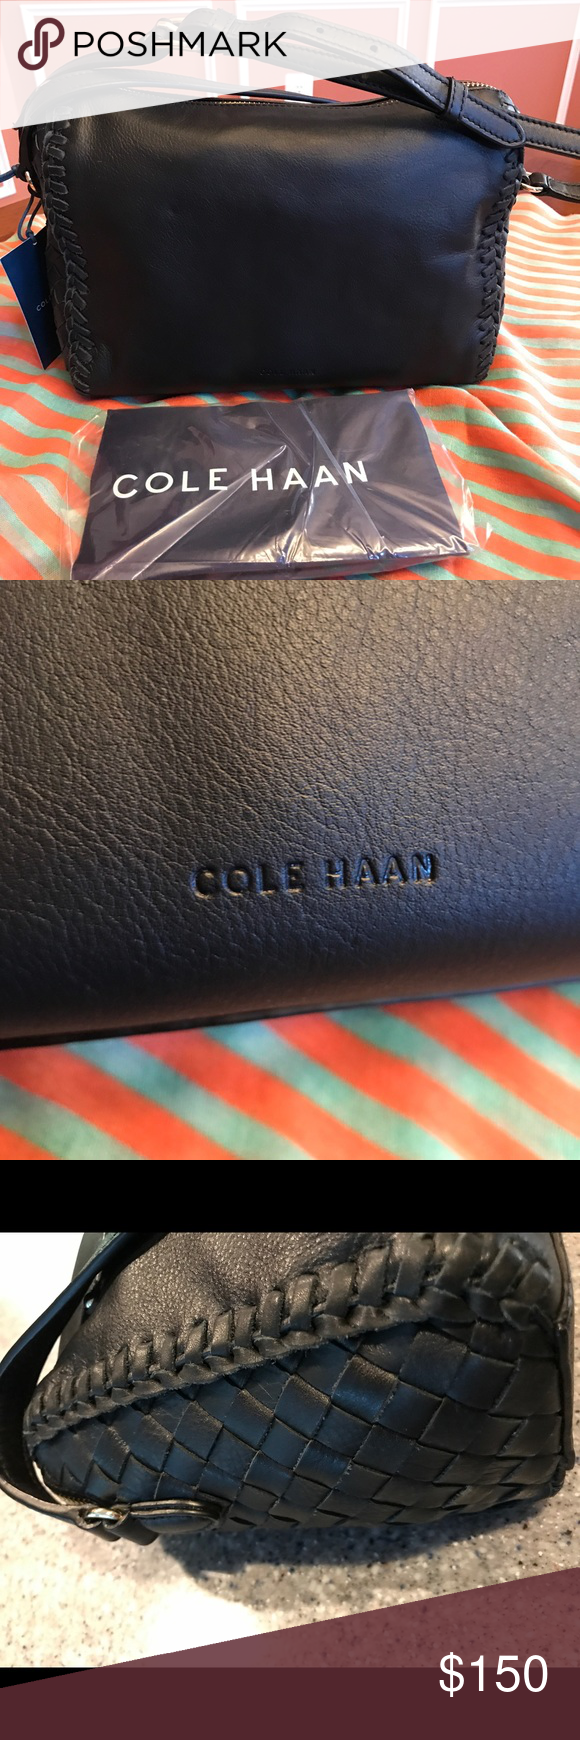 a56cdefdbe COLE HAAN DILLAN LEATHER CROSSBODY Authentic Cole HAAN Dillan CrossBody Bag  is New w/Tags. Soft black leather with weaved sides and silver hardware, ...